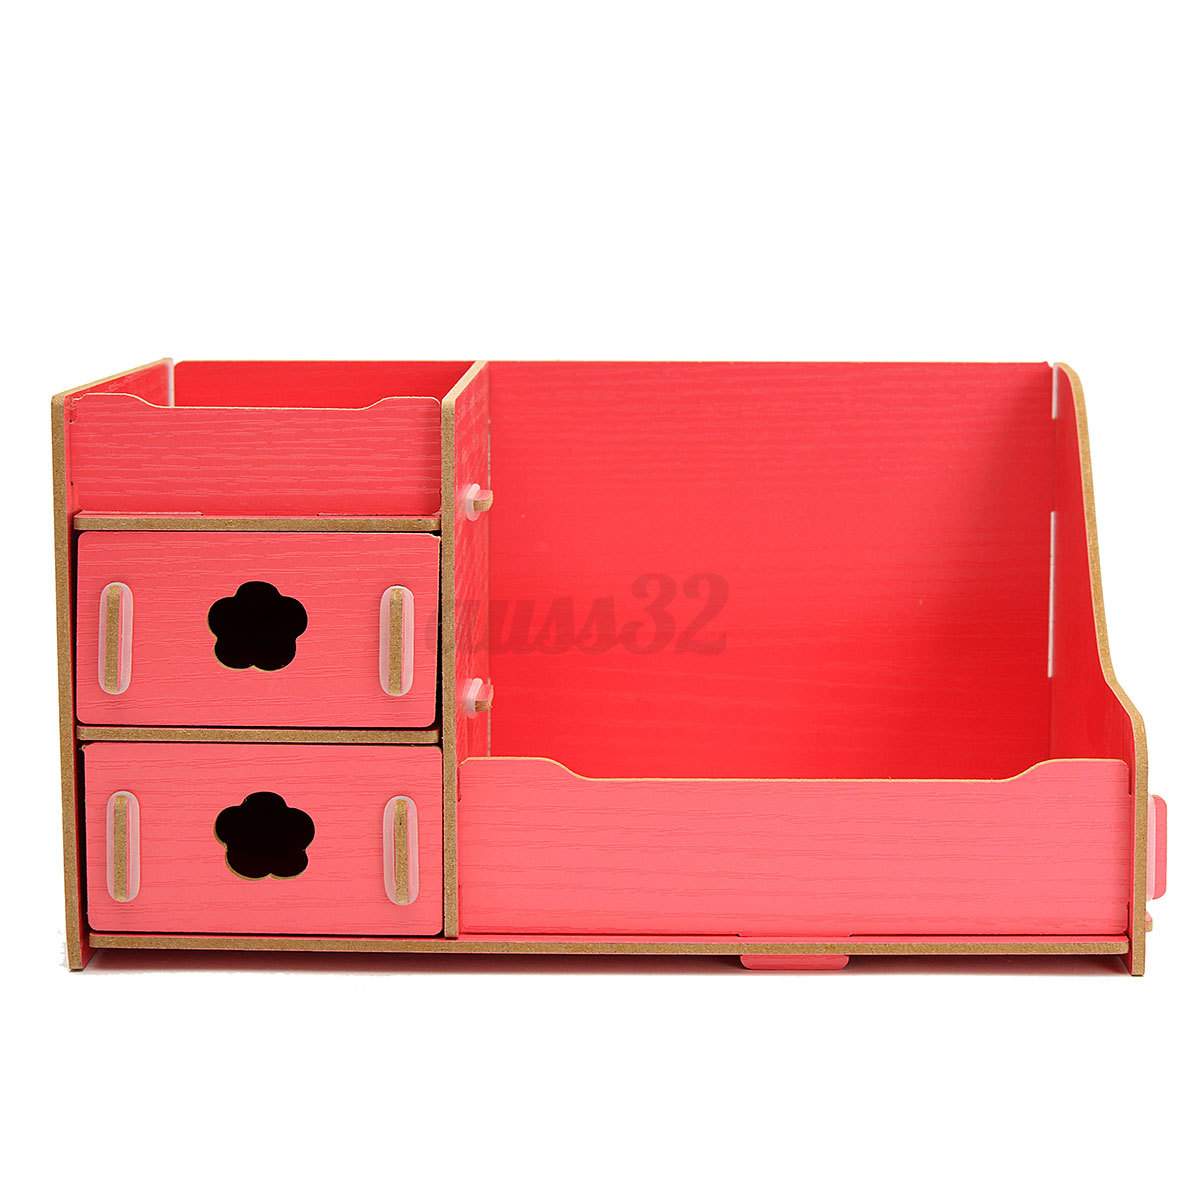 Wooden storage box cosmetics multifunctional diy makeup - Cute desk organizer ...